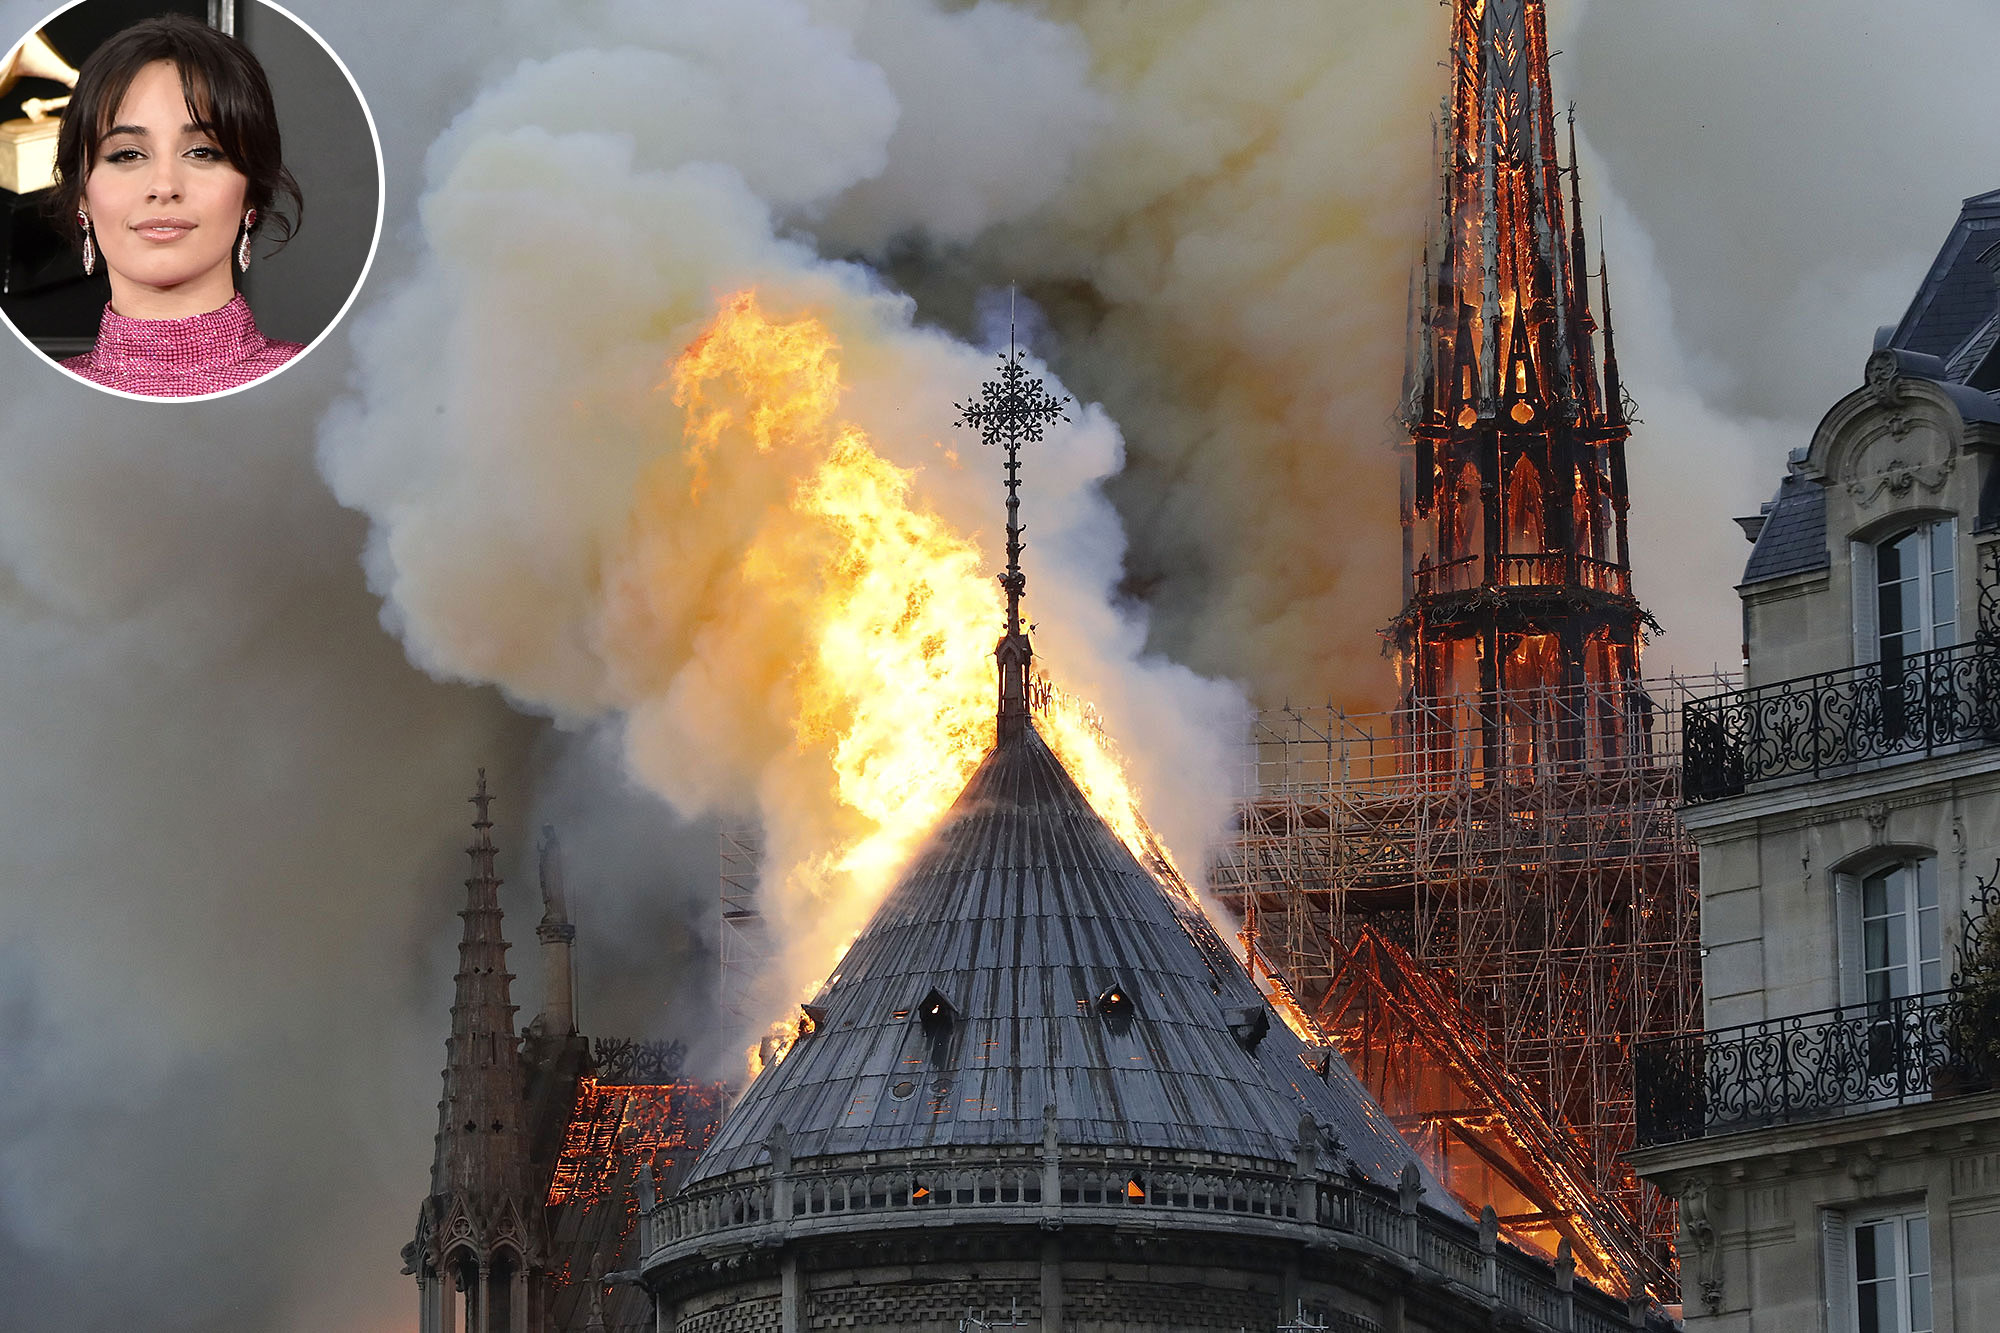 Notre Dame on Fire Camila Cabello - Flames and smoke are seen billowing from the roof at Notre-Dame Cathedral April 15, 2019 in Paris, France.